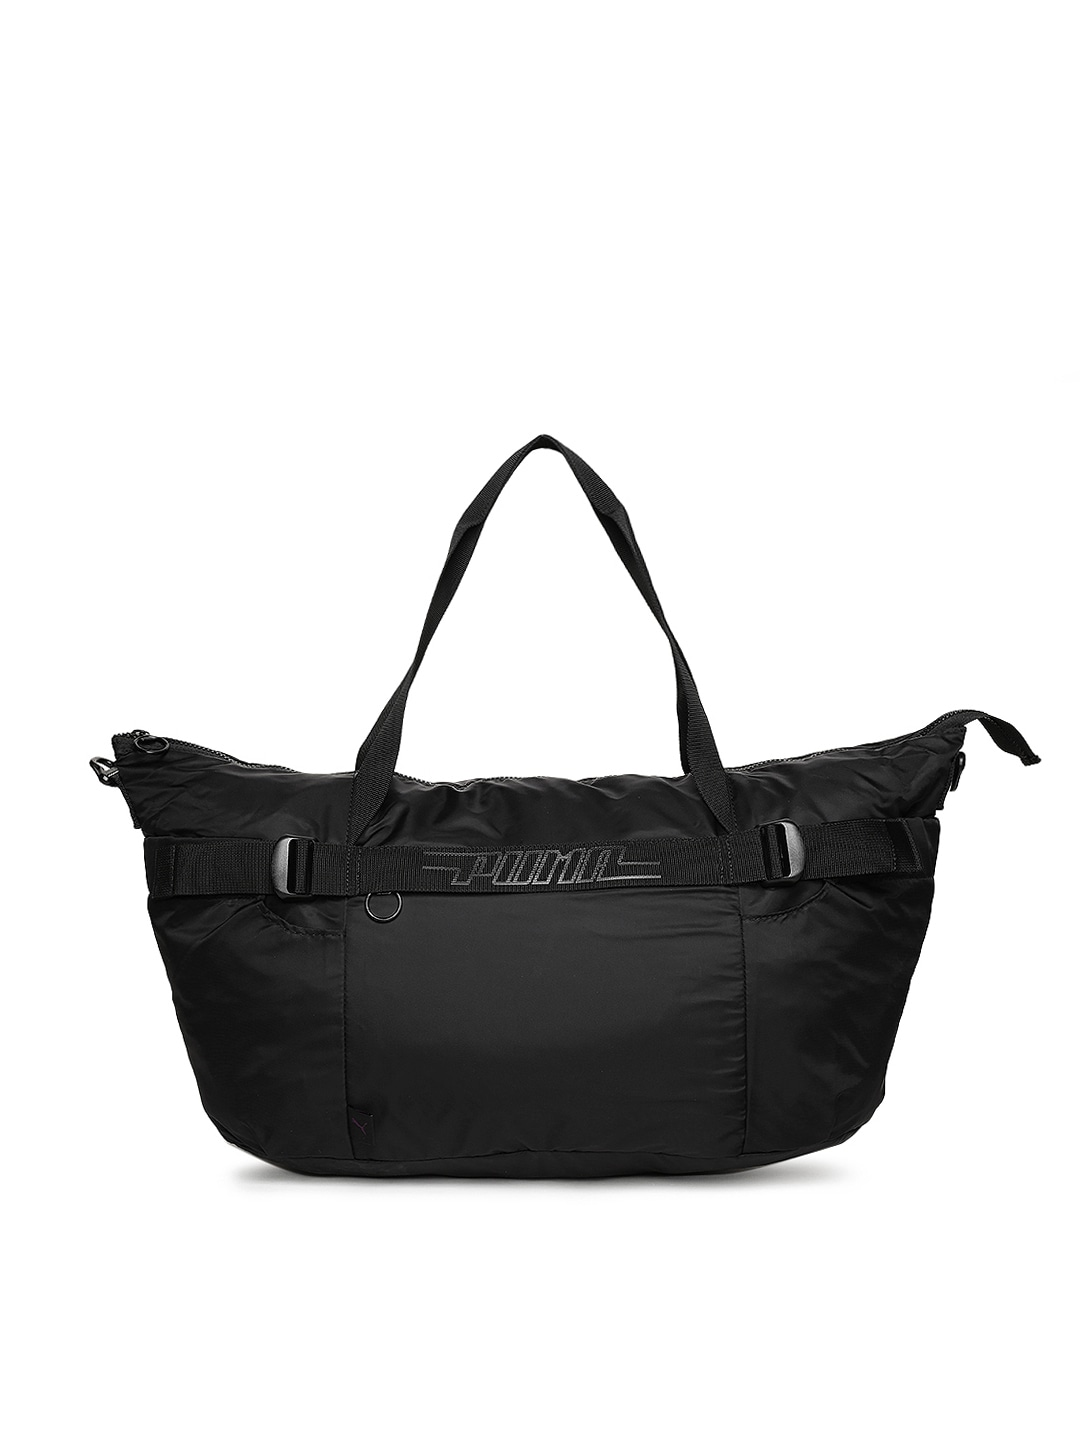 Gym Bag - Buy Gym Bags for Men, Women   Kids Online   Myntra 01fc90db9f